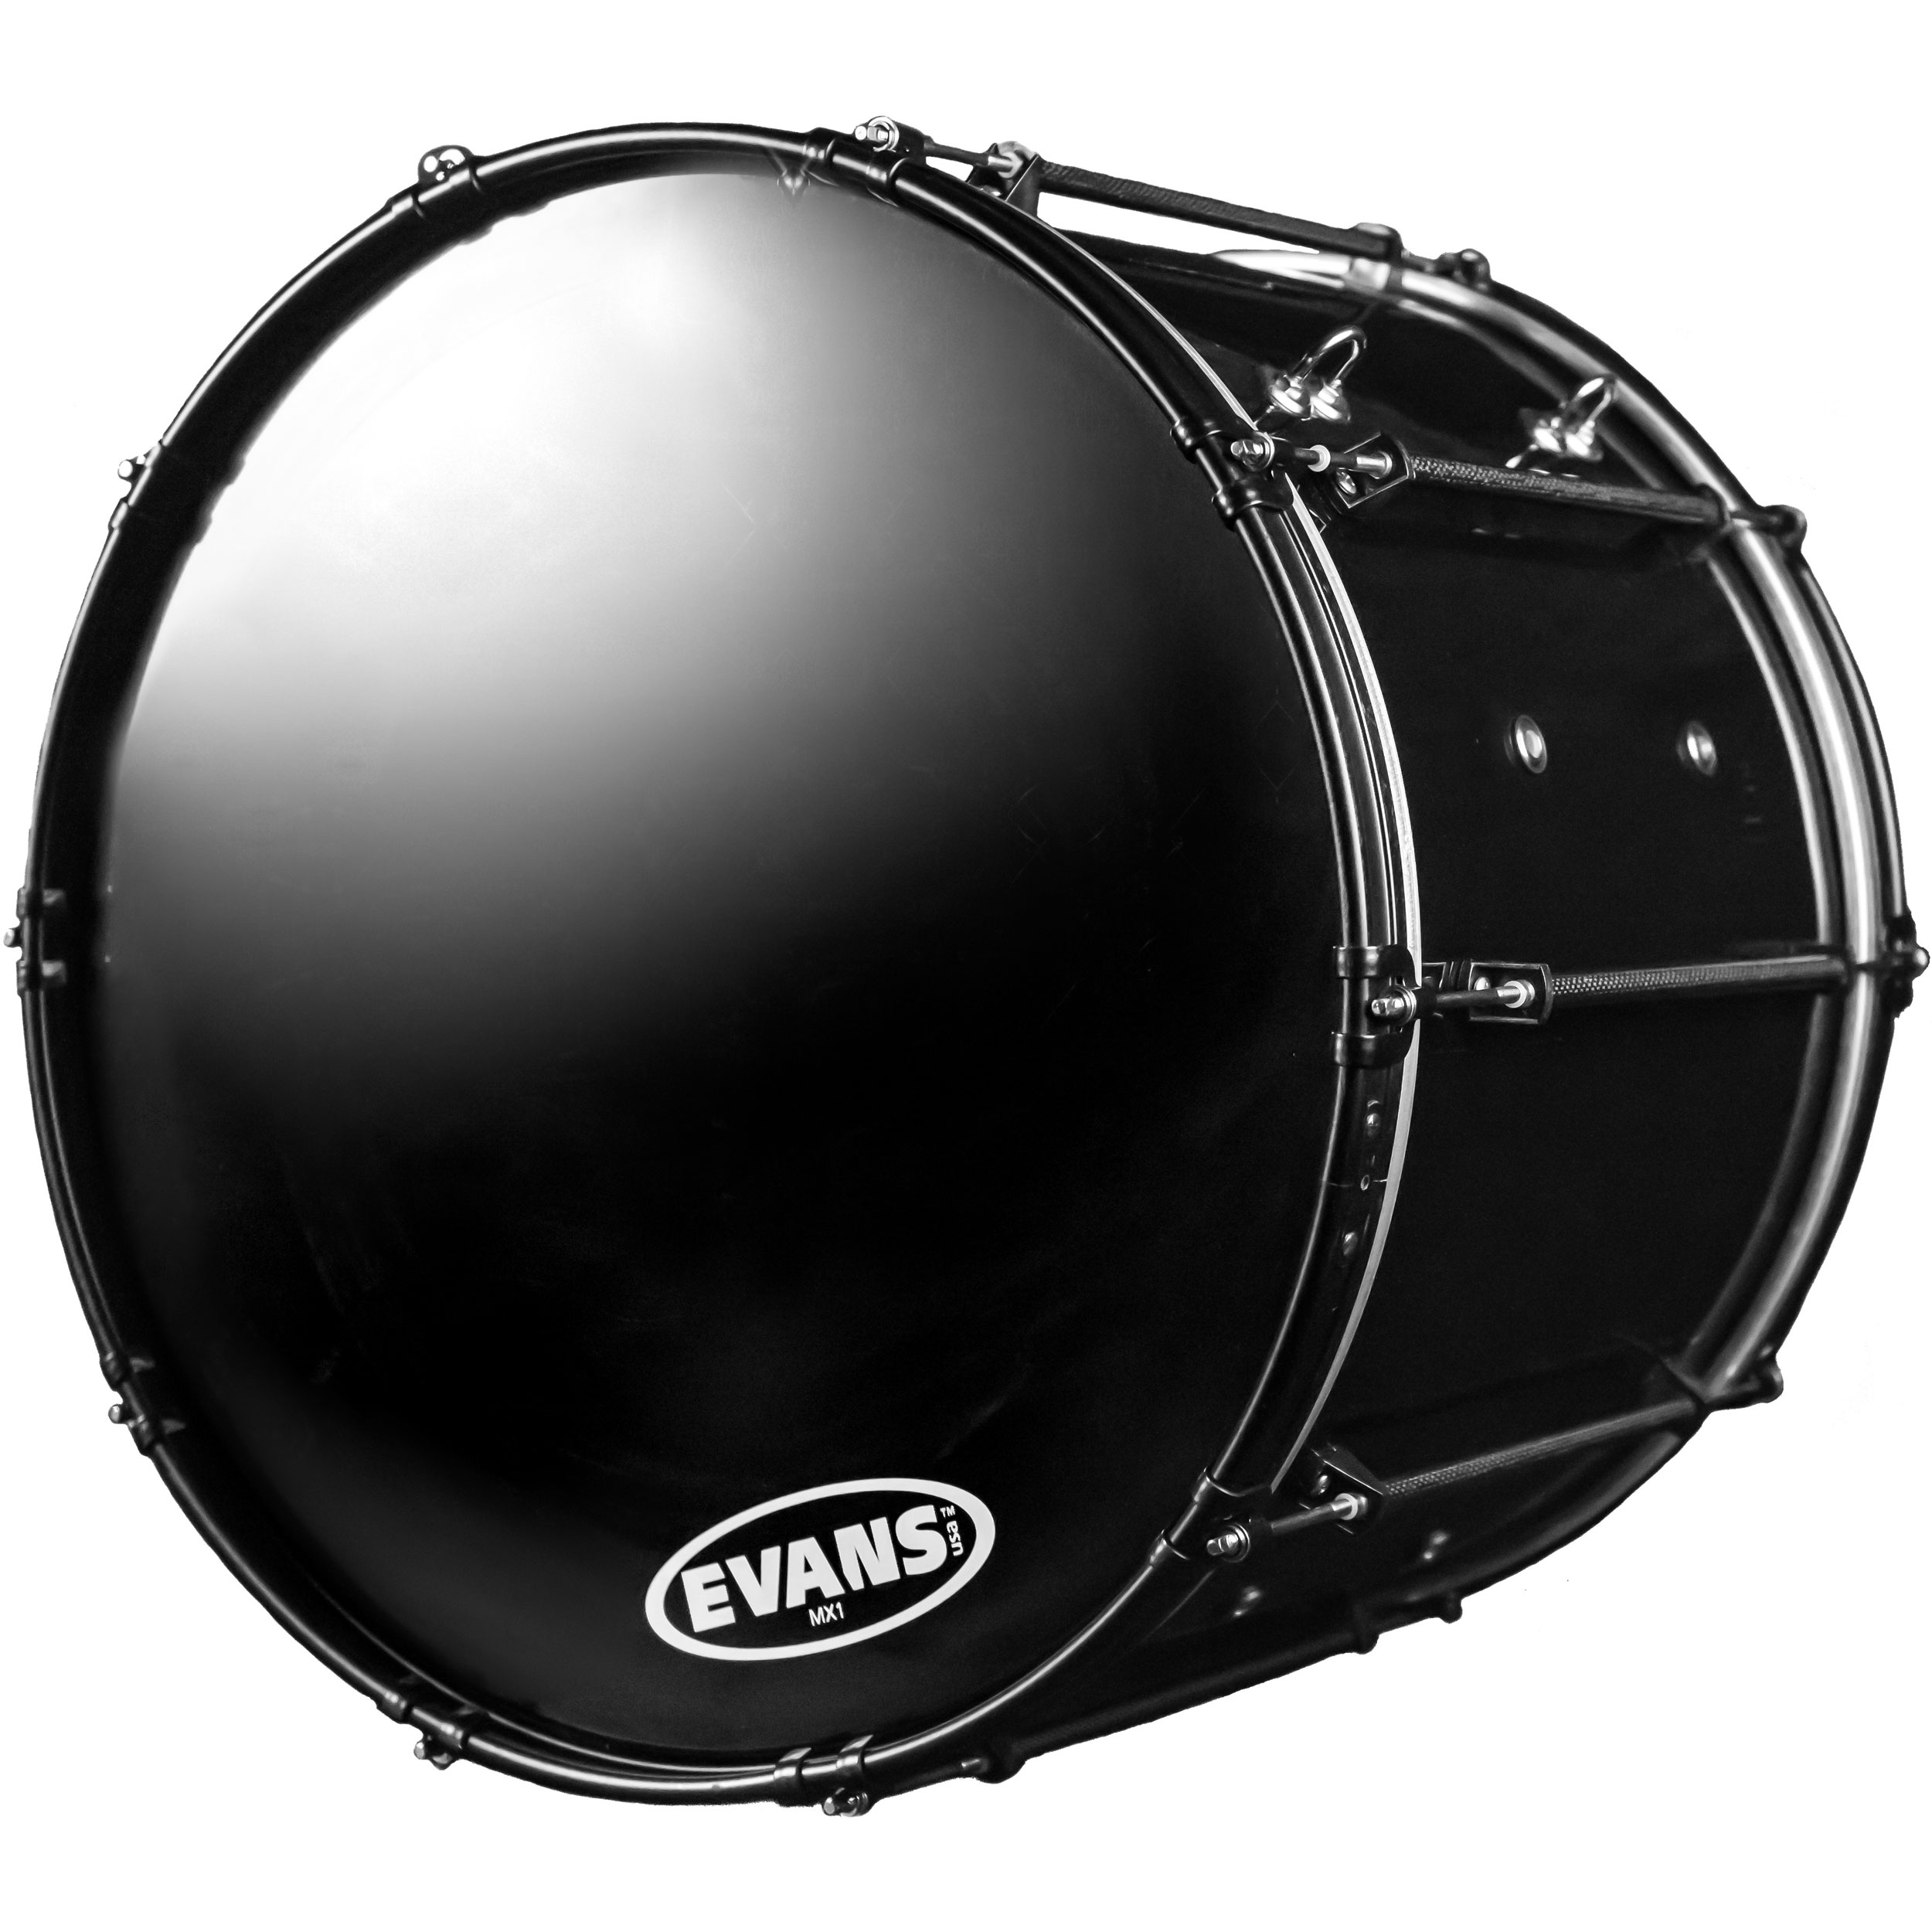 "System Blue 16"" Professional Series Marching Bass Drum"